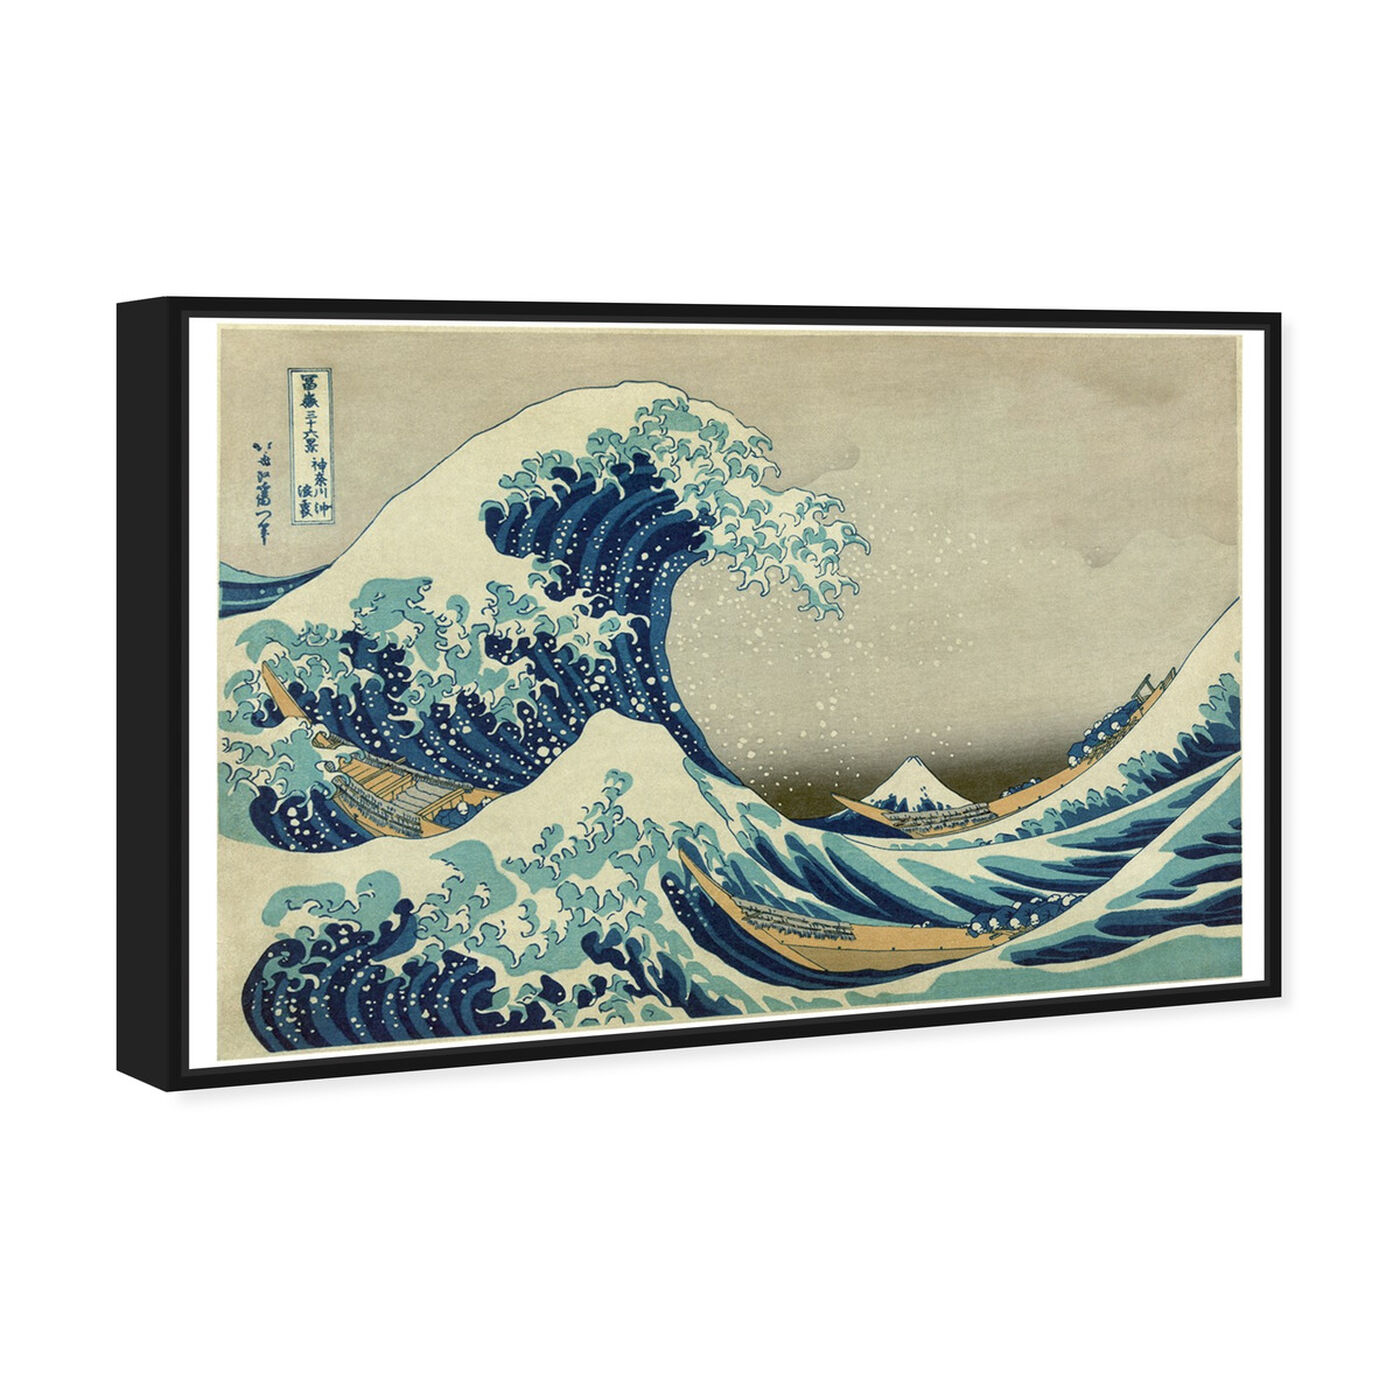 Angled view of The Great Wave of Kanagawa featuring world and countries and asian cultures art.